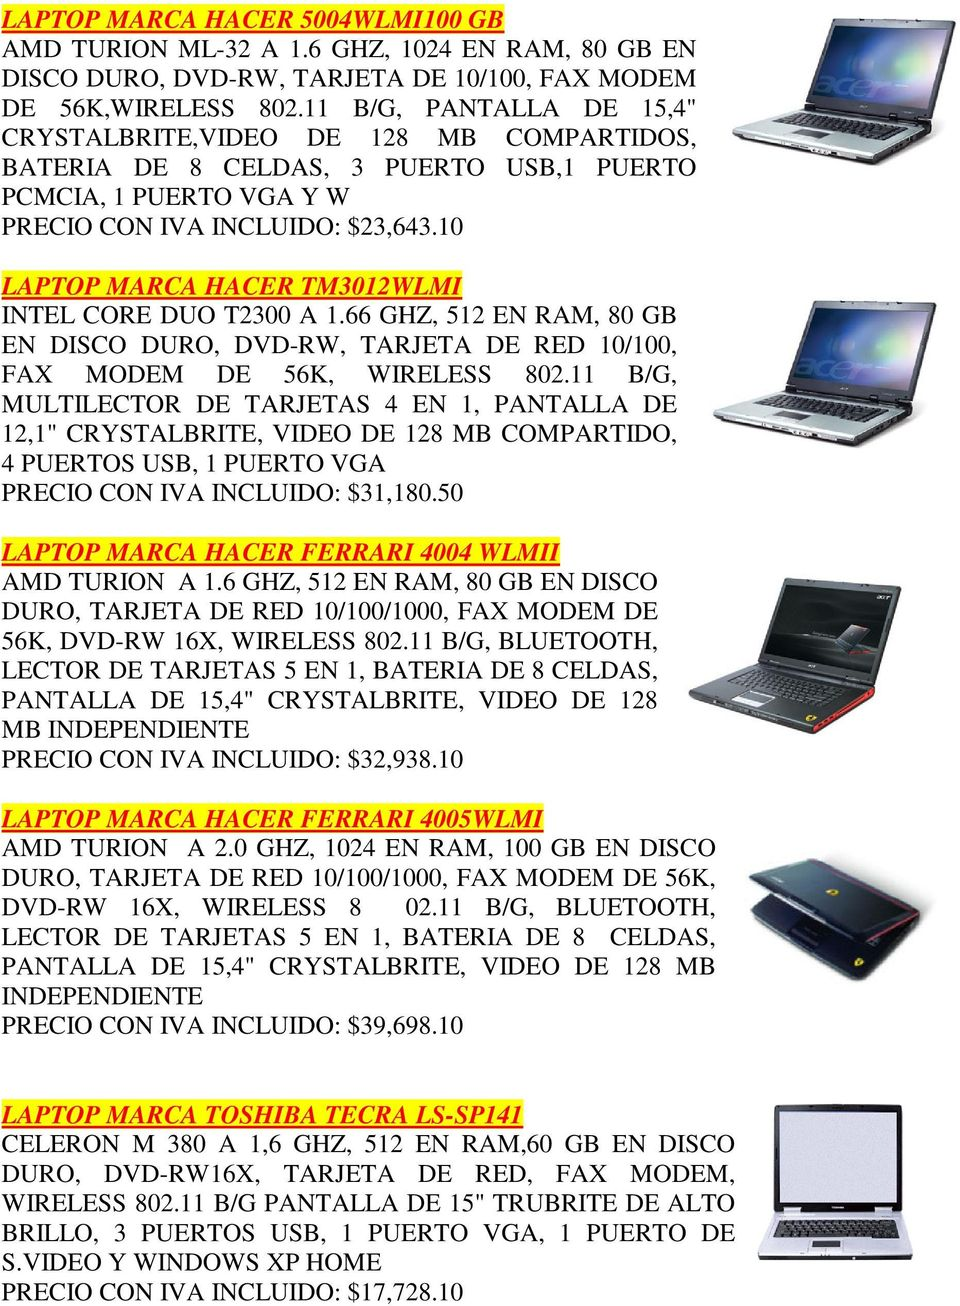 10 LAPTOP MARCA HACER TM3012WLMI INTEL CORE DUO T2300 A 1.66 GHZ, 512 EN RAM, 80 GB EN DISCO DURO, DVD-RW, TARJETA DE RED 10/100, FAX MODEM DE 56K, WIRELESS 802.